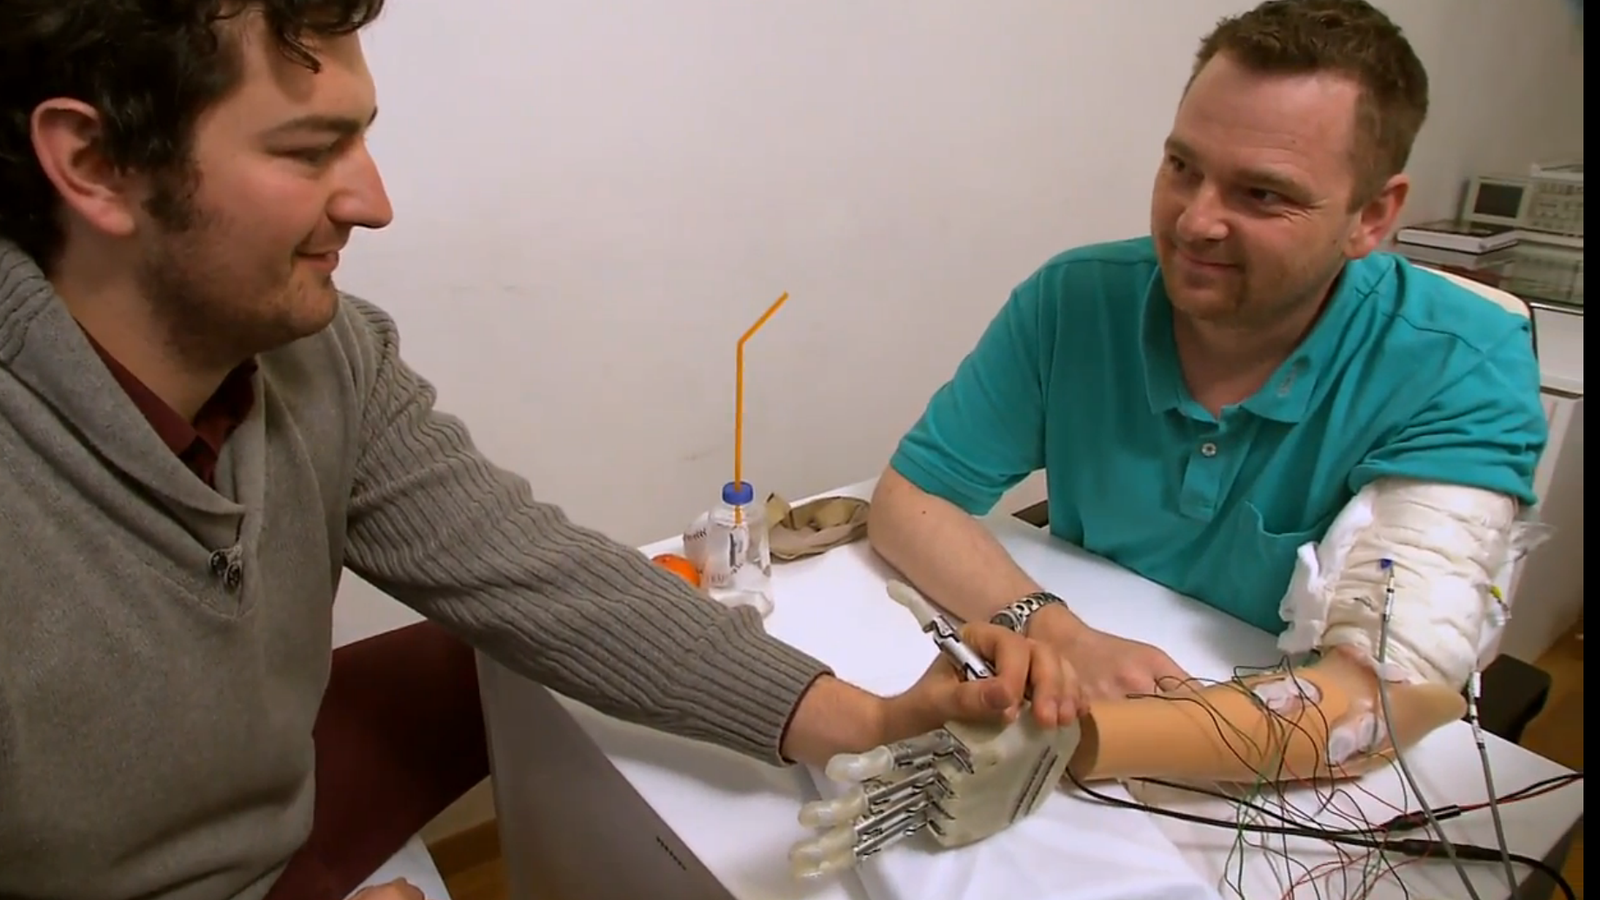 This Incredible Star Wars-Style Bionic Hand Let an Amputee Feel Again